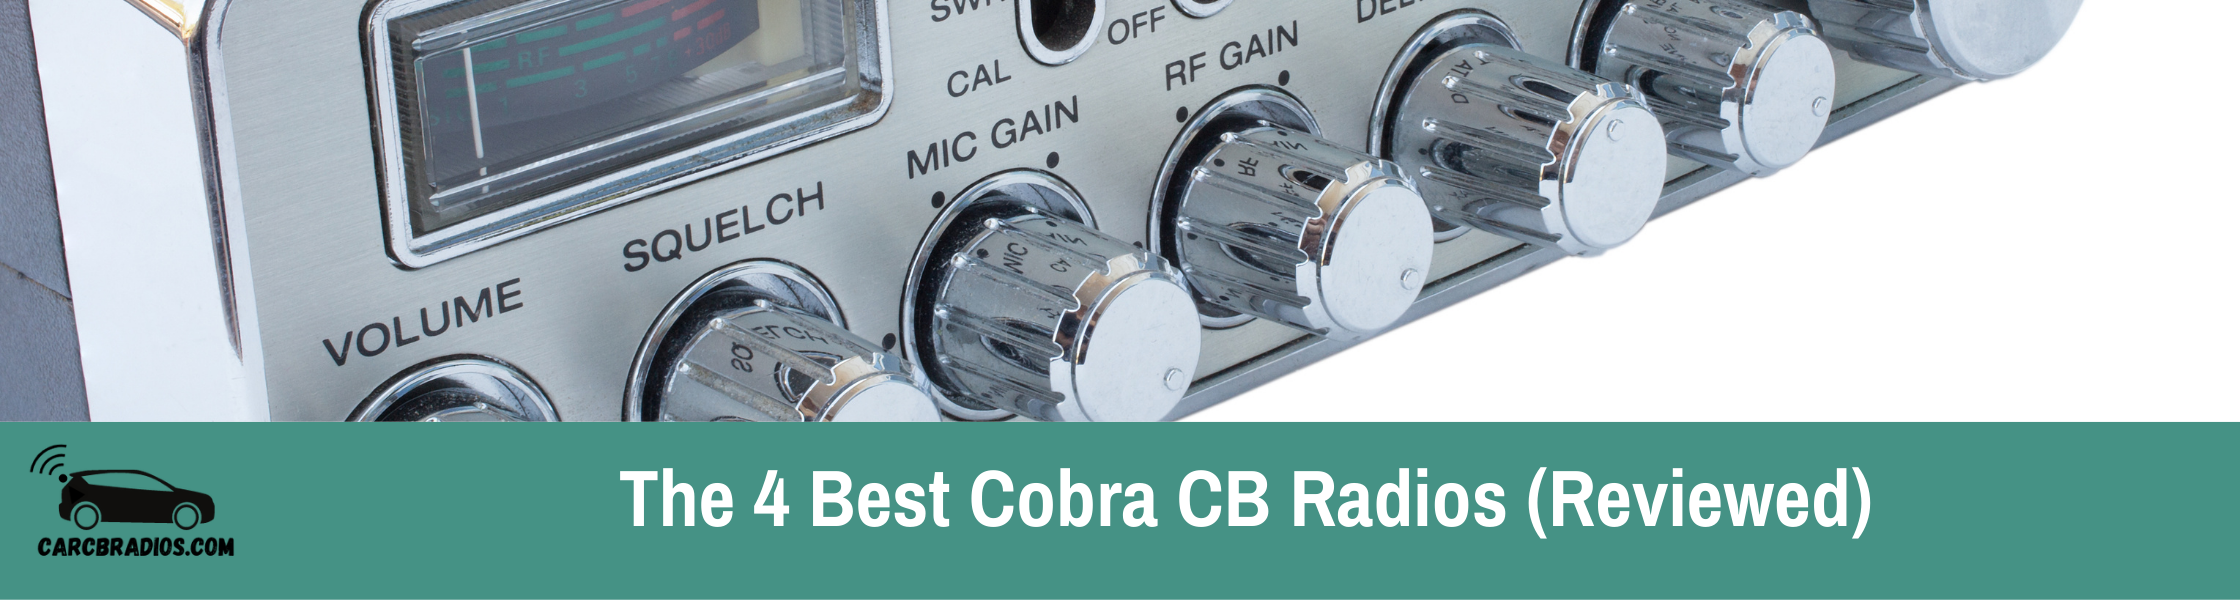 4 Best Cobra CB Radios: Let's dig into the 4 best and explain what makes them special